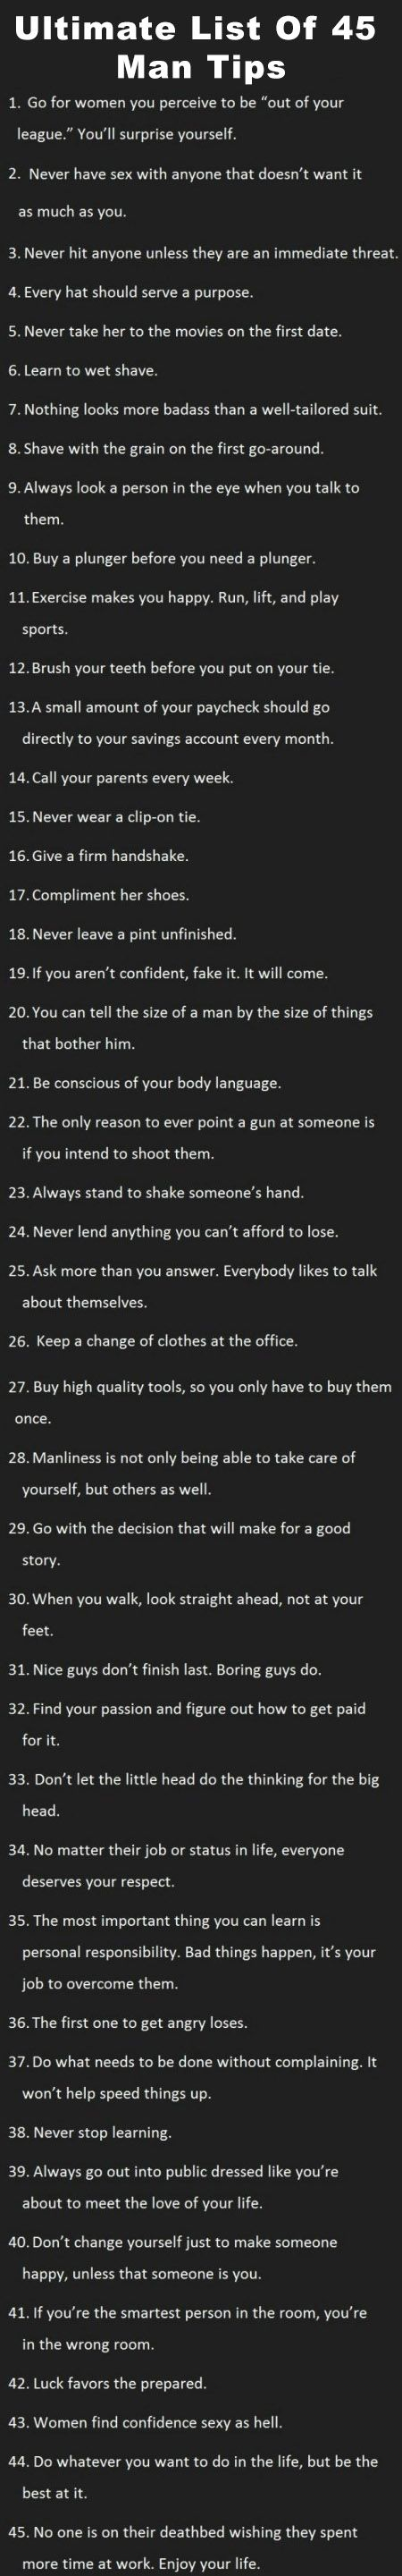 Ultimate-List-Of-45-Man-Tips (I'm a woman, and even I'm impressed with this list!)